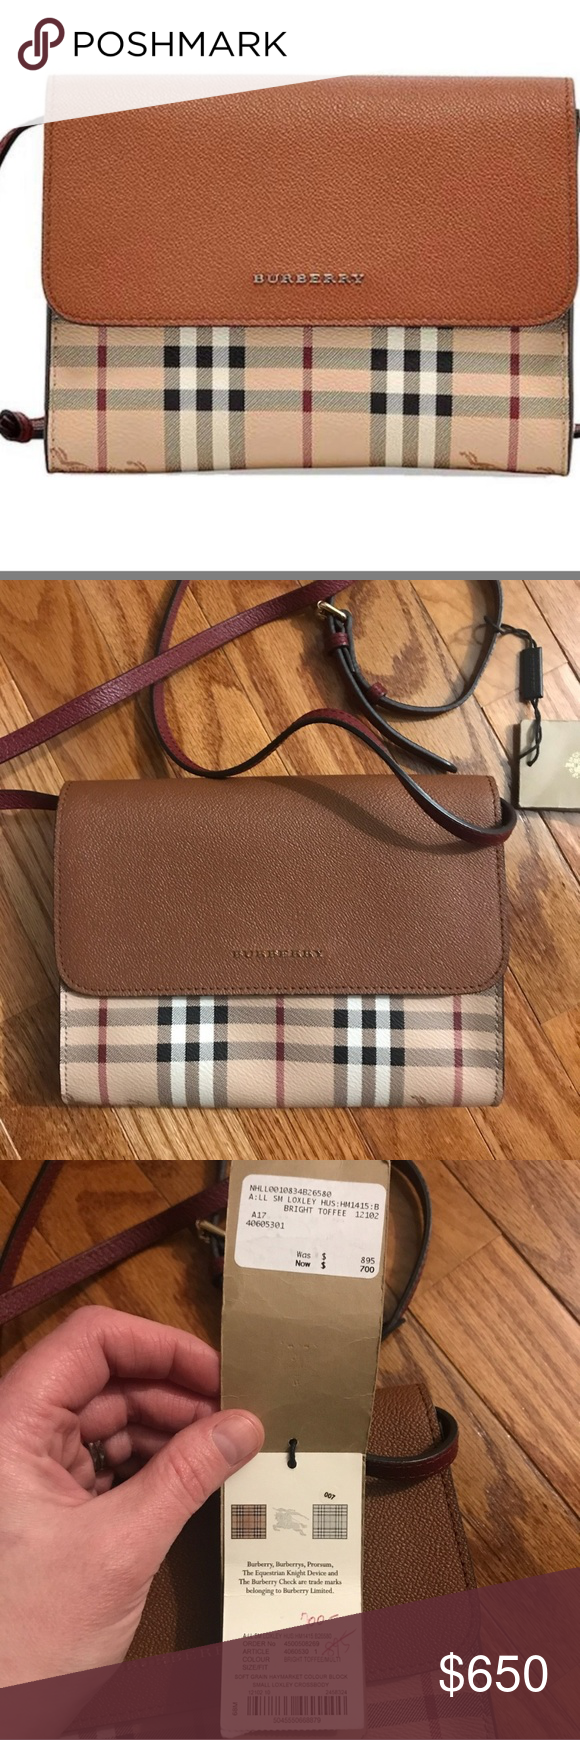 7282a777de Burberry Haymarket Check Loxley Womens Purse Burberry Haymarket Check  Loxley Womens Bright Toffee Leather Cross body